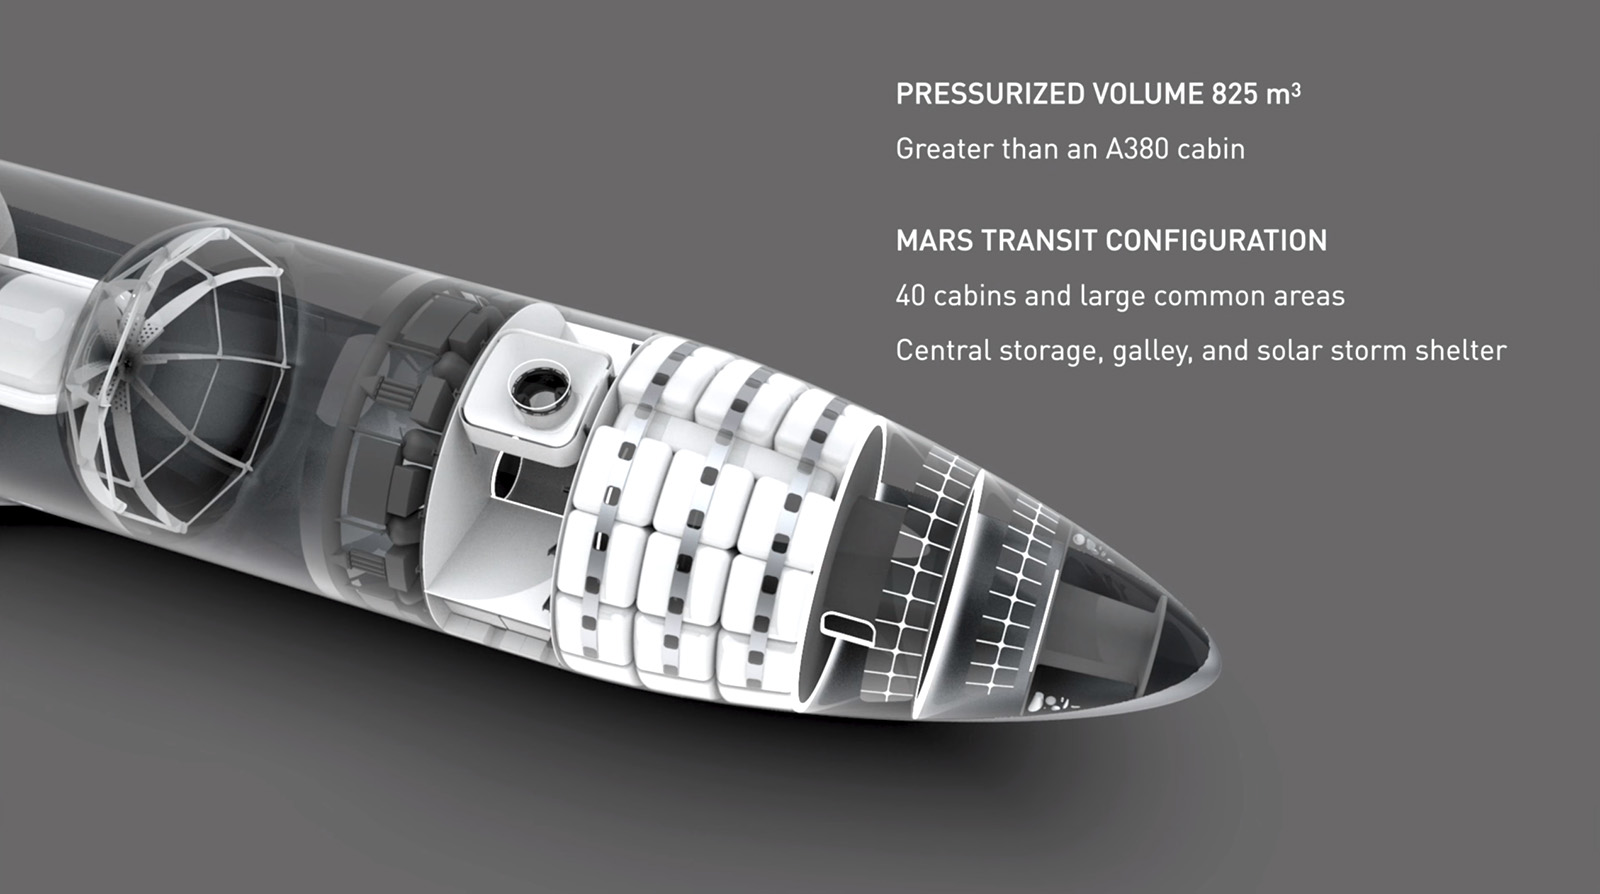 Elon Musk S Mars Dream Hinges On A Giant New Rocket